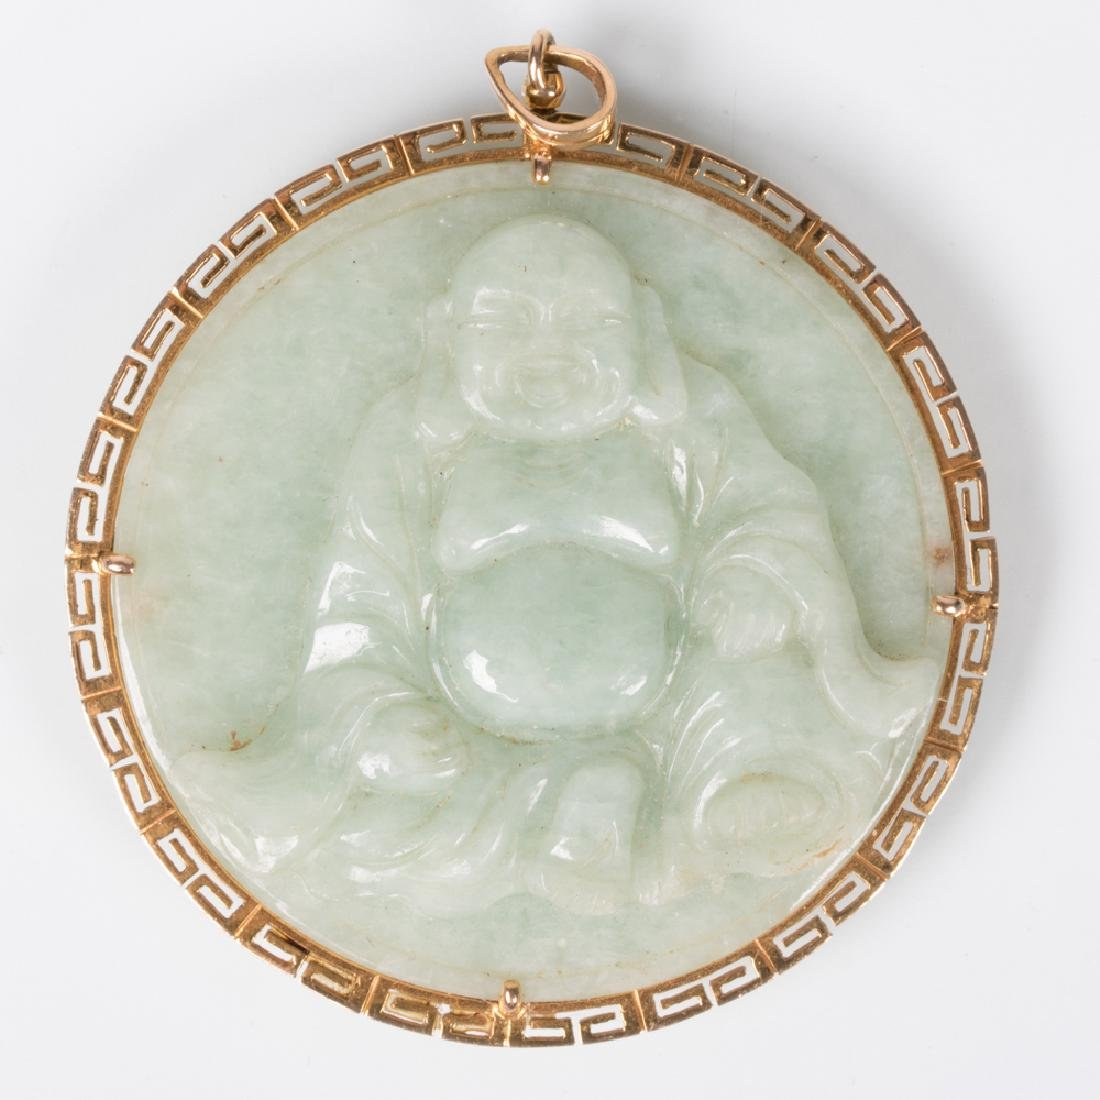 A 14kt. Yellow Gold and Carved Celadon Jade Pendant,